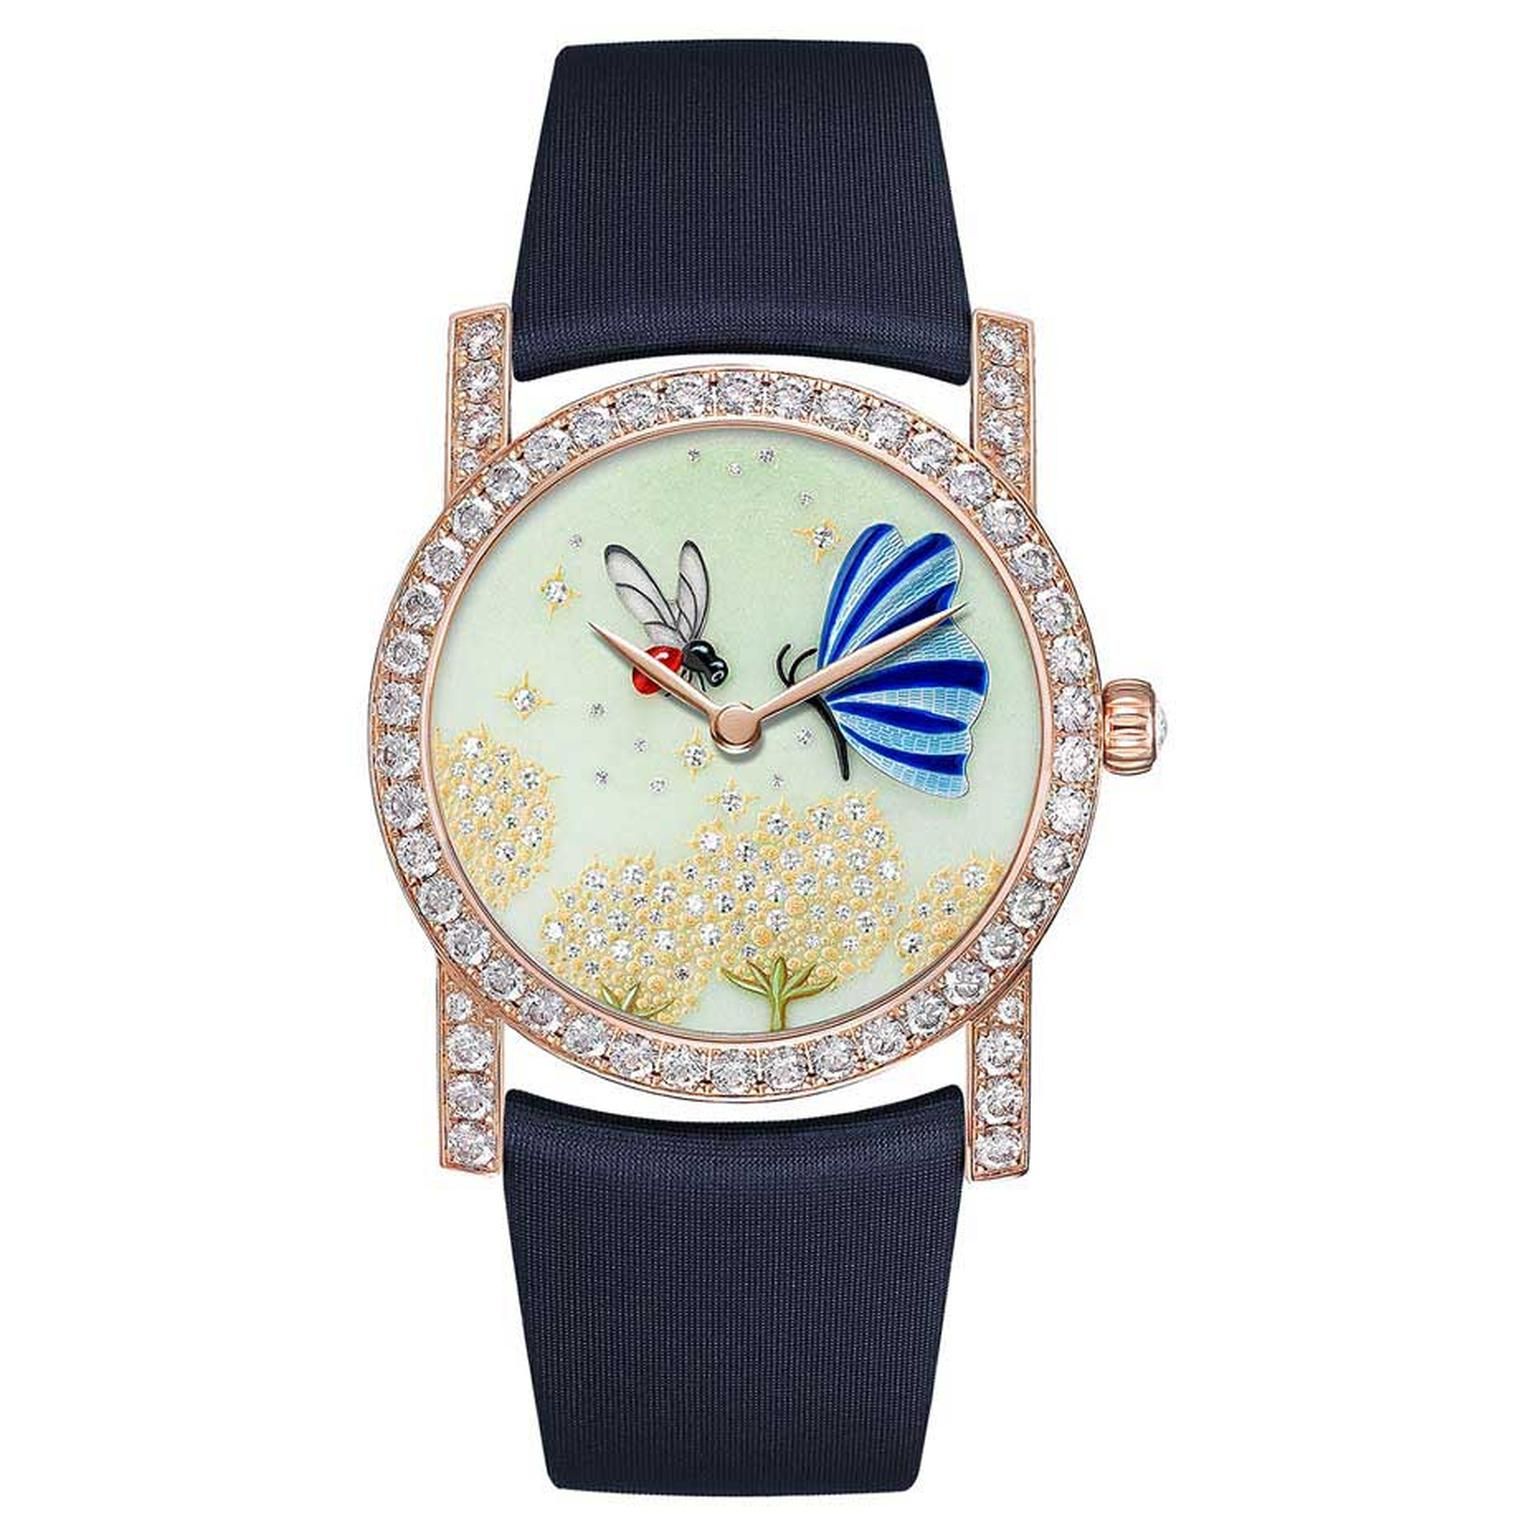 Chaumet Attrape-moi…si tu m'aimes collection watch featuring a bee with wings made out of rock crystal and a butterfly, both hand-painted on mother of pearl, hovering over golden dandelion flowers set with brilliant-cut diamonds.